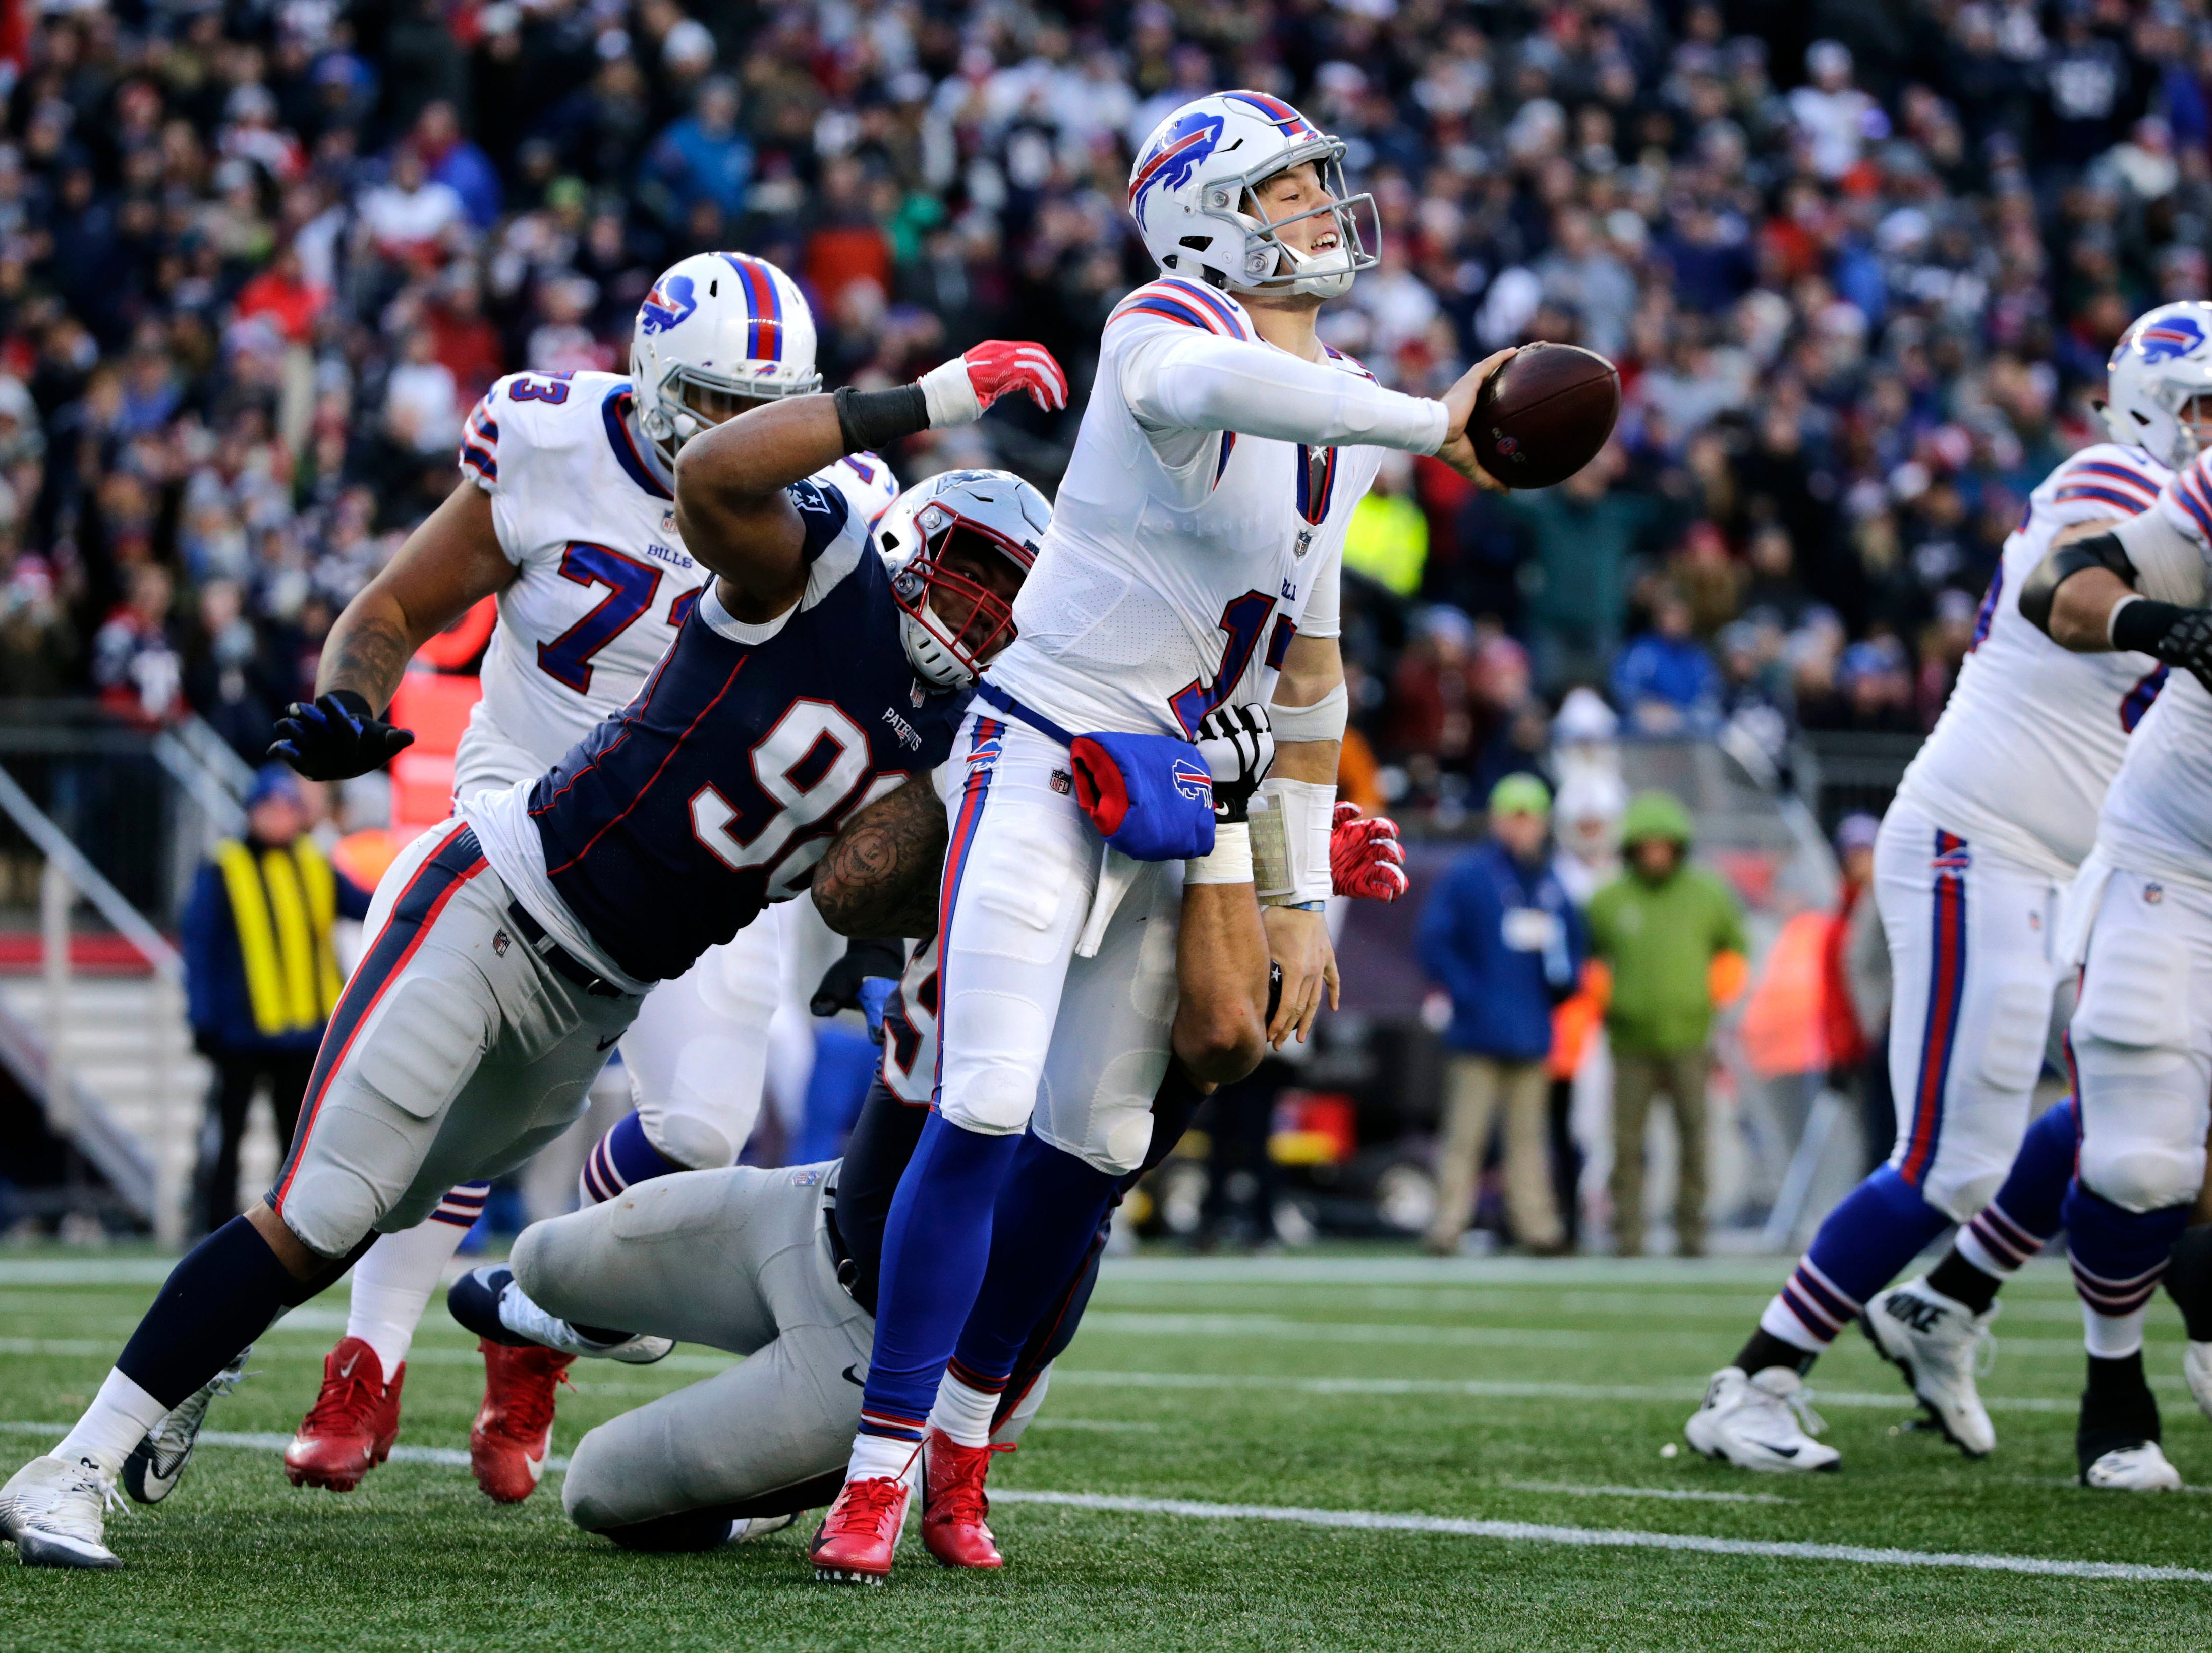 Buffalo Bills quarterback Josh Allen tries to flip the ball to a receiver as New England Patriots defenders Trey Flowers, left, and Lawrence Guy chase him down during the second half of an NFL football game, Sunday, Dec. 23, 2018, in Foxborough, Mass. (AP Photo/Elise Amendola)